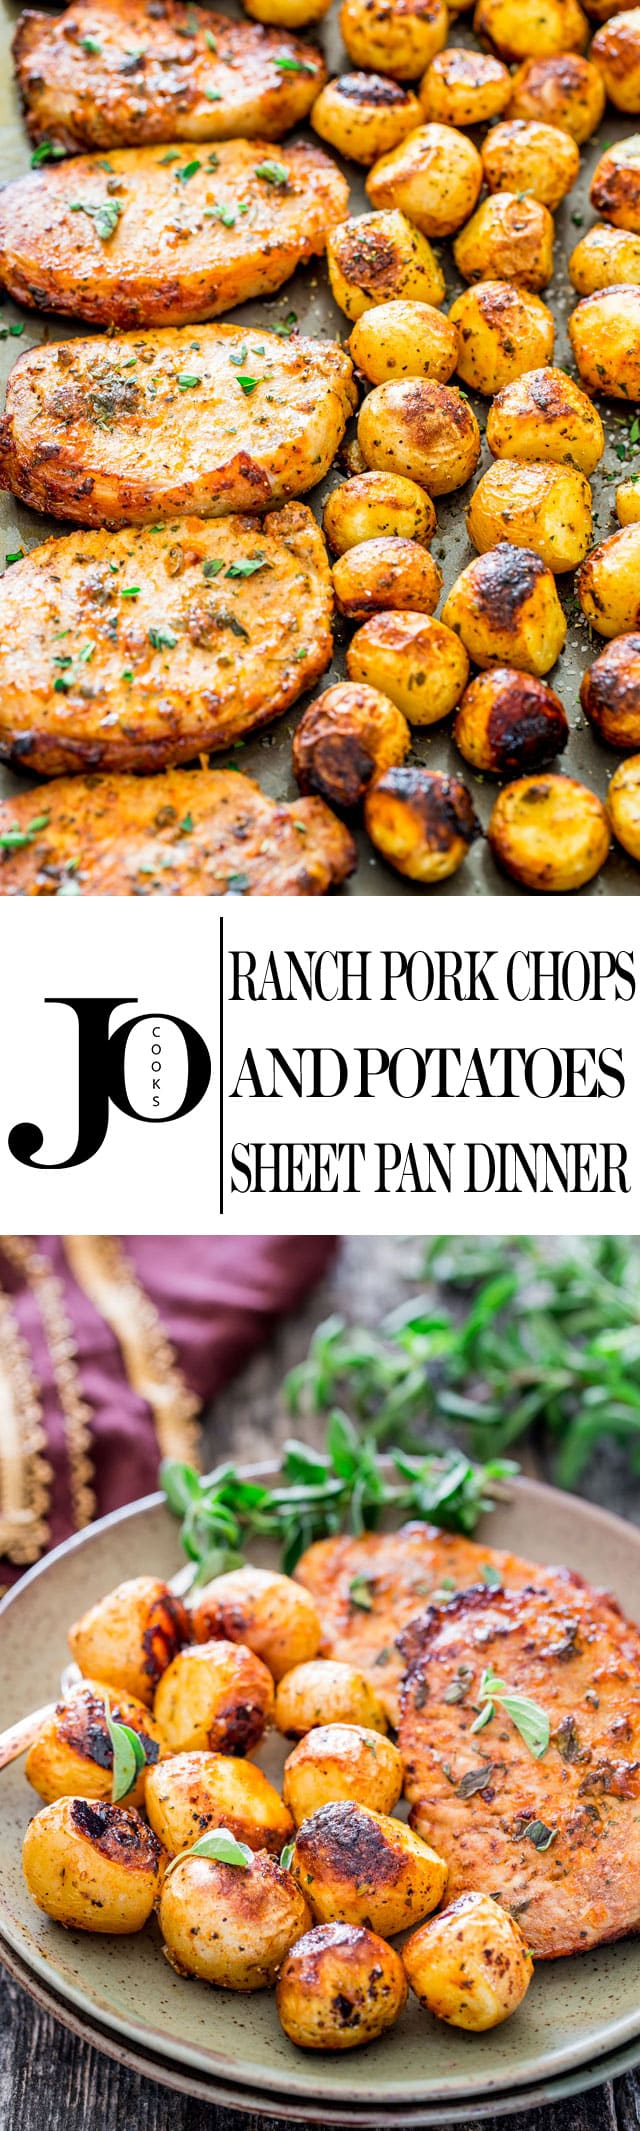 Ranch Pork Chops and Potatoes Sheet Pan Dinner - get out your sheet pan to make this delicious and easy dinner with ranch pork chops and potatoes! #ranchporkchops